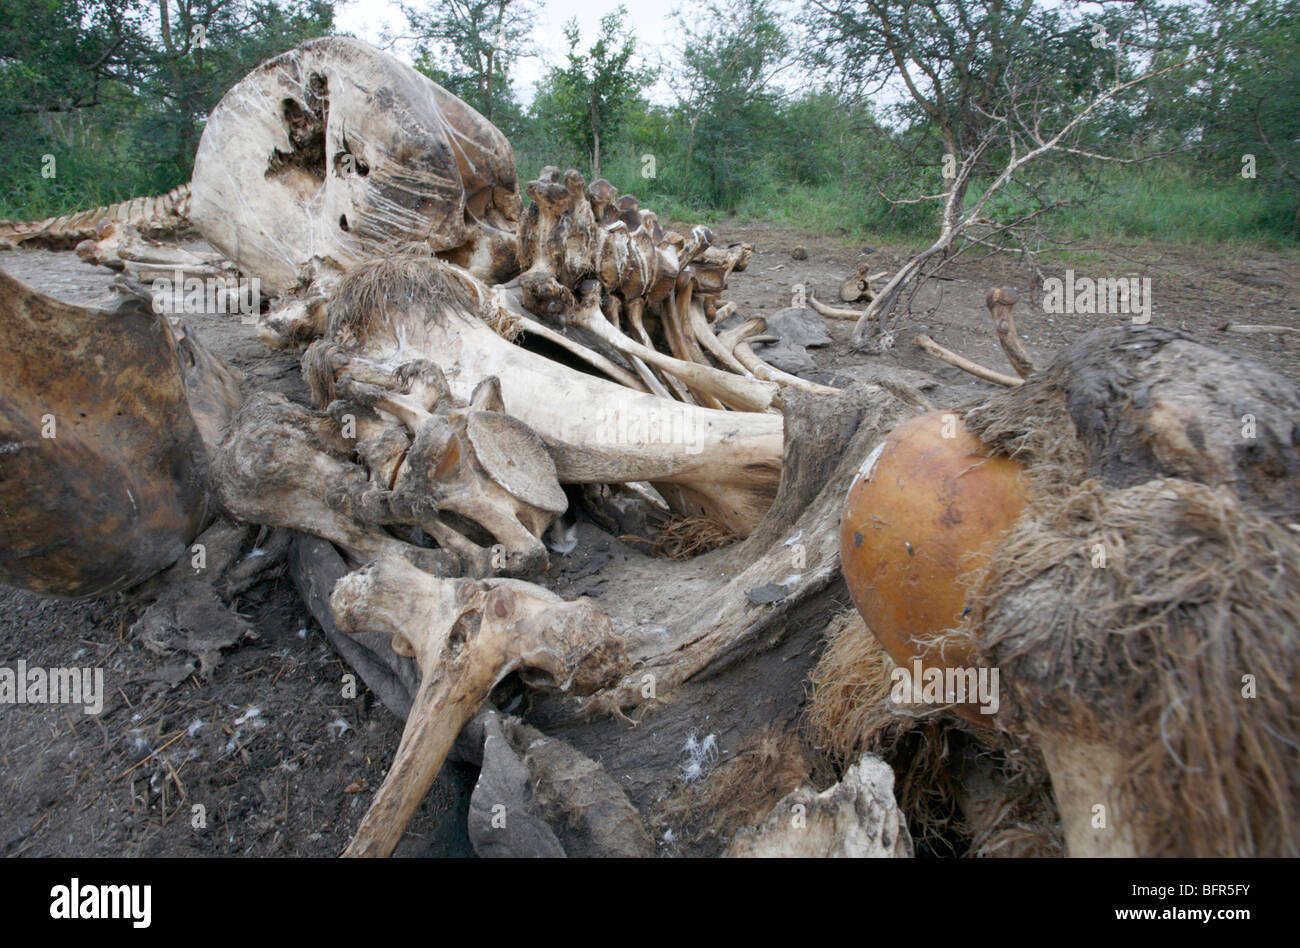 Elephant bones remaining after scavengers have cleaned them - Stock Image